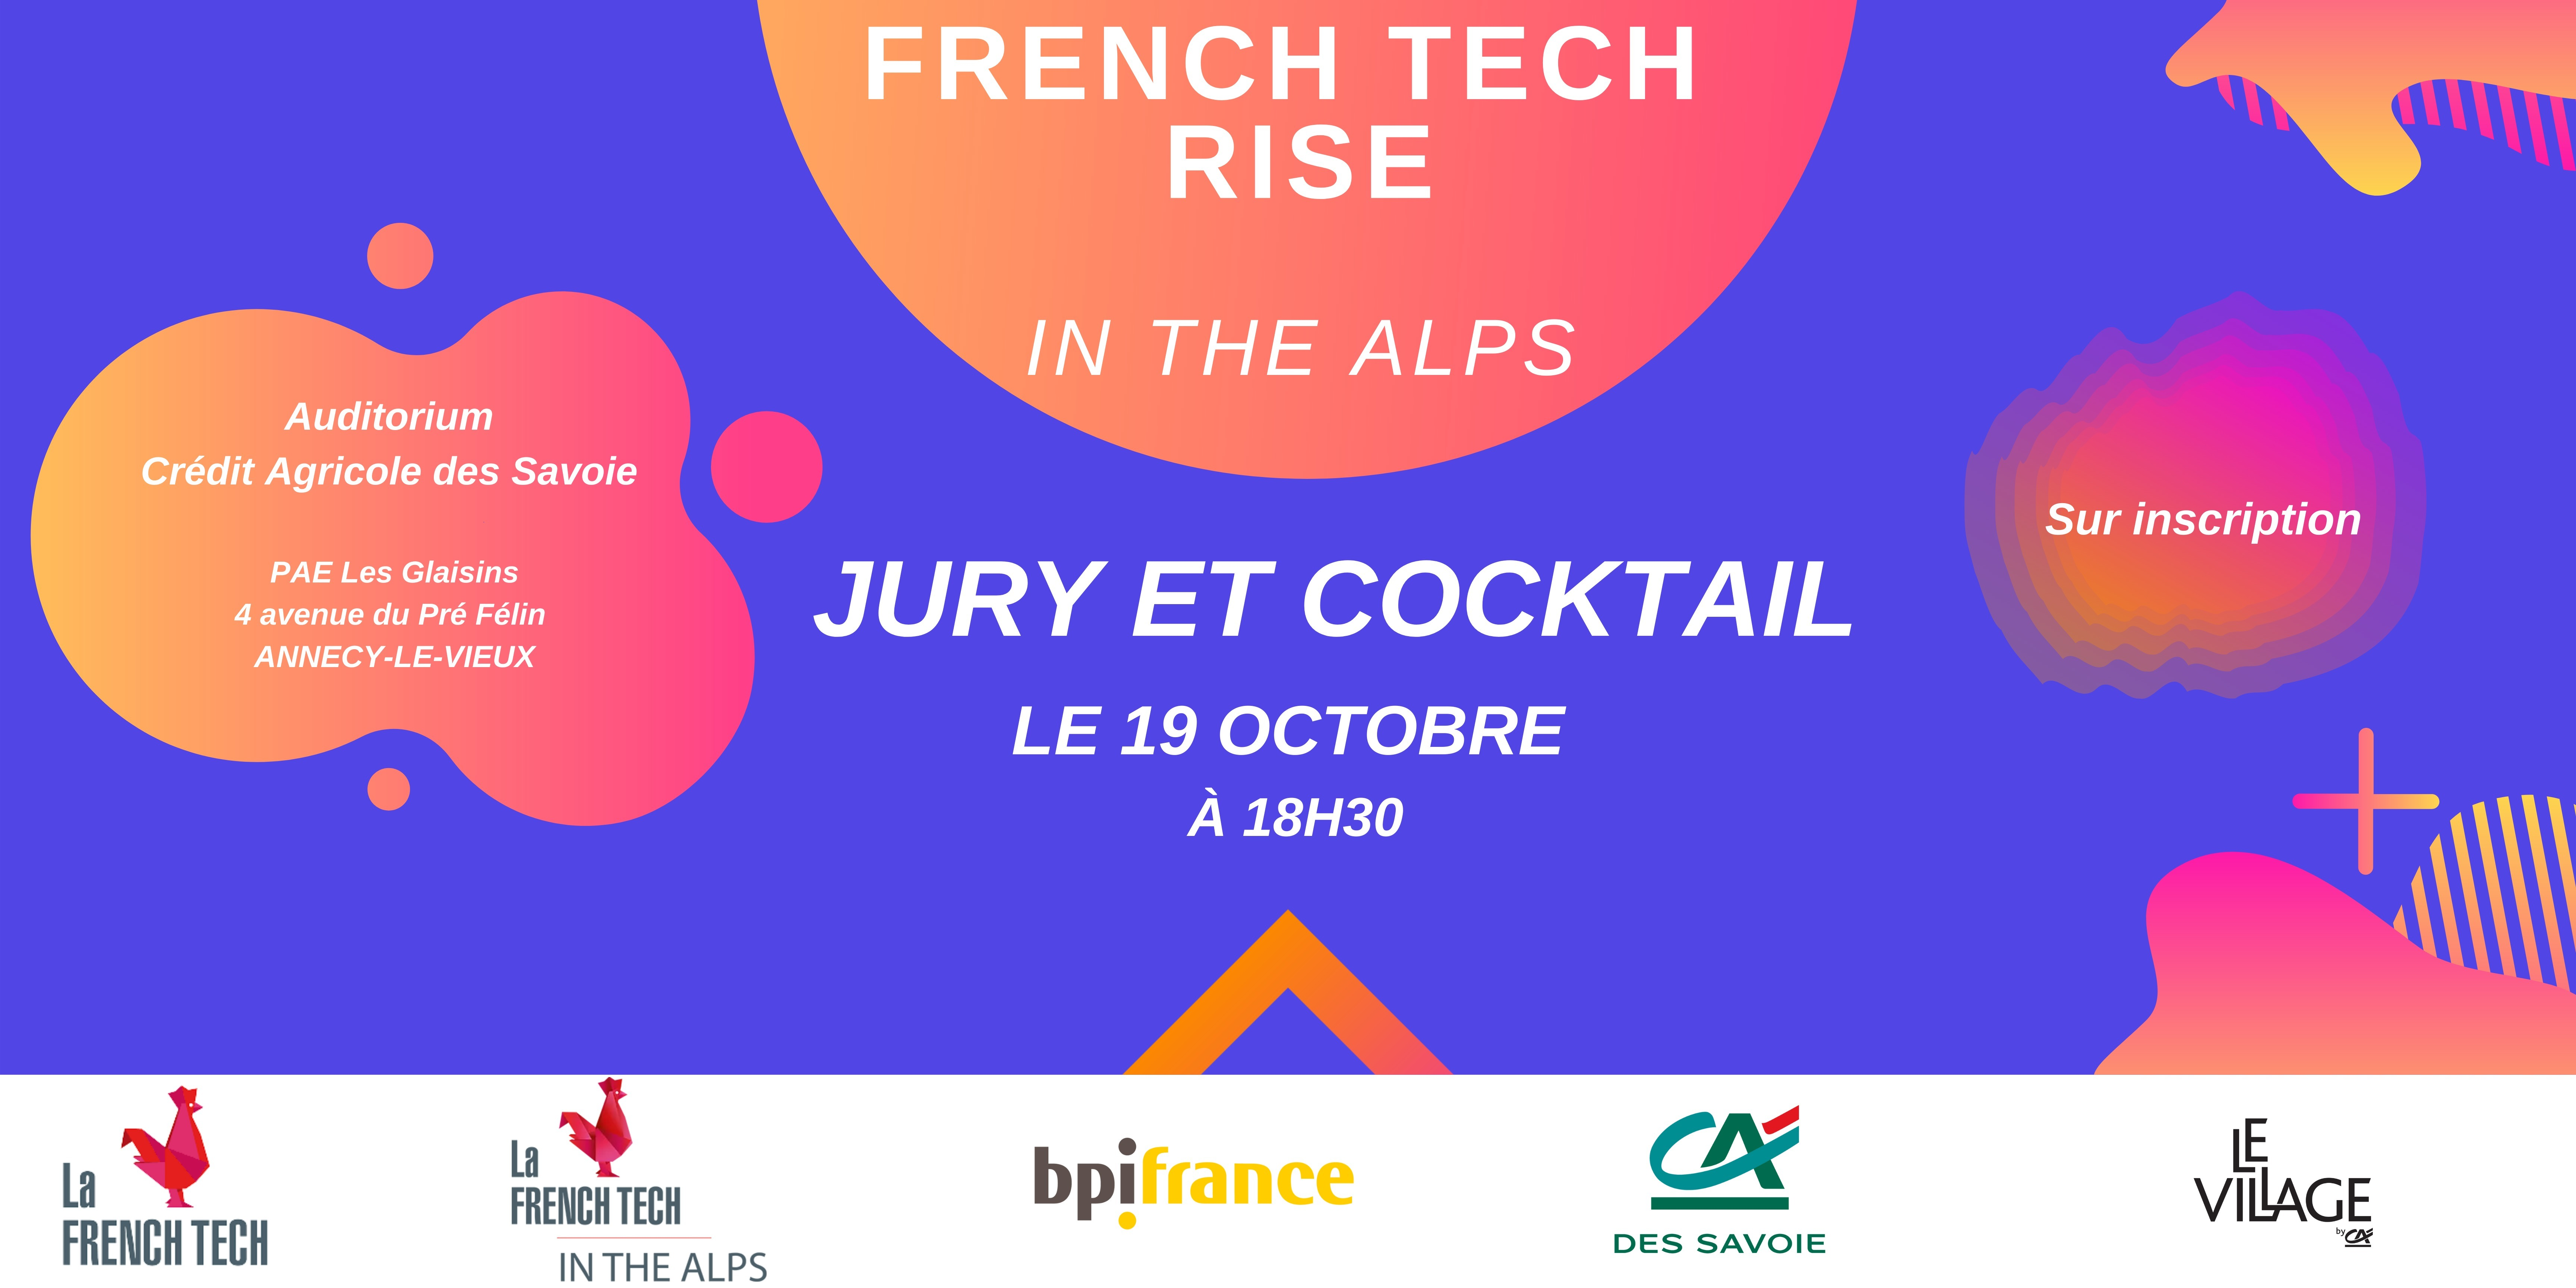 French Tech Rise in the Alps